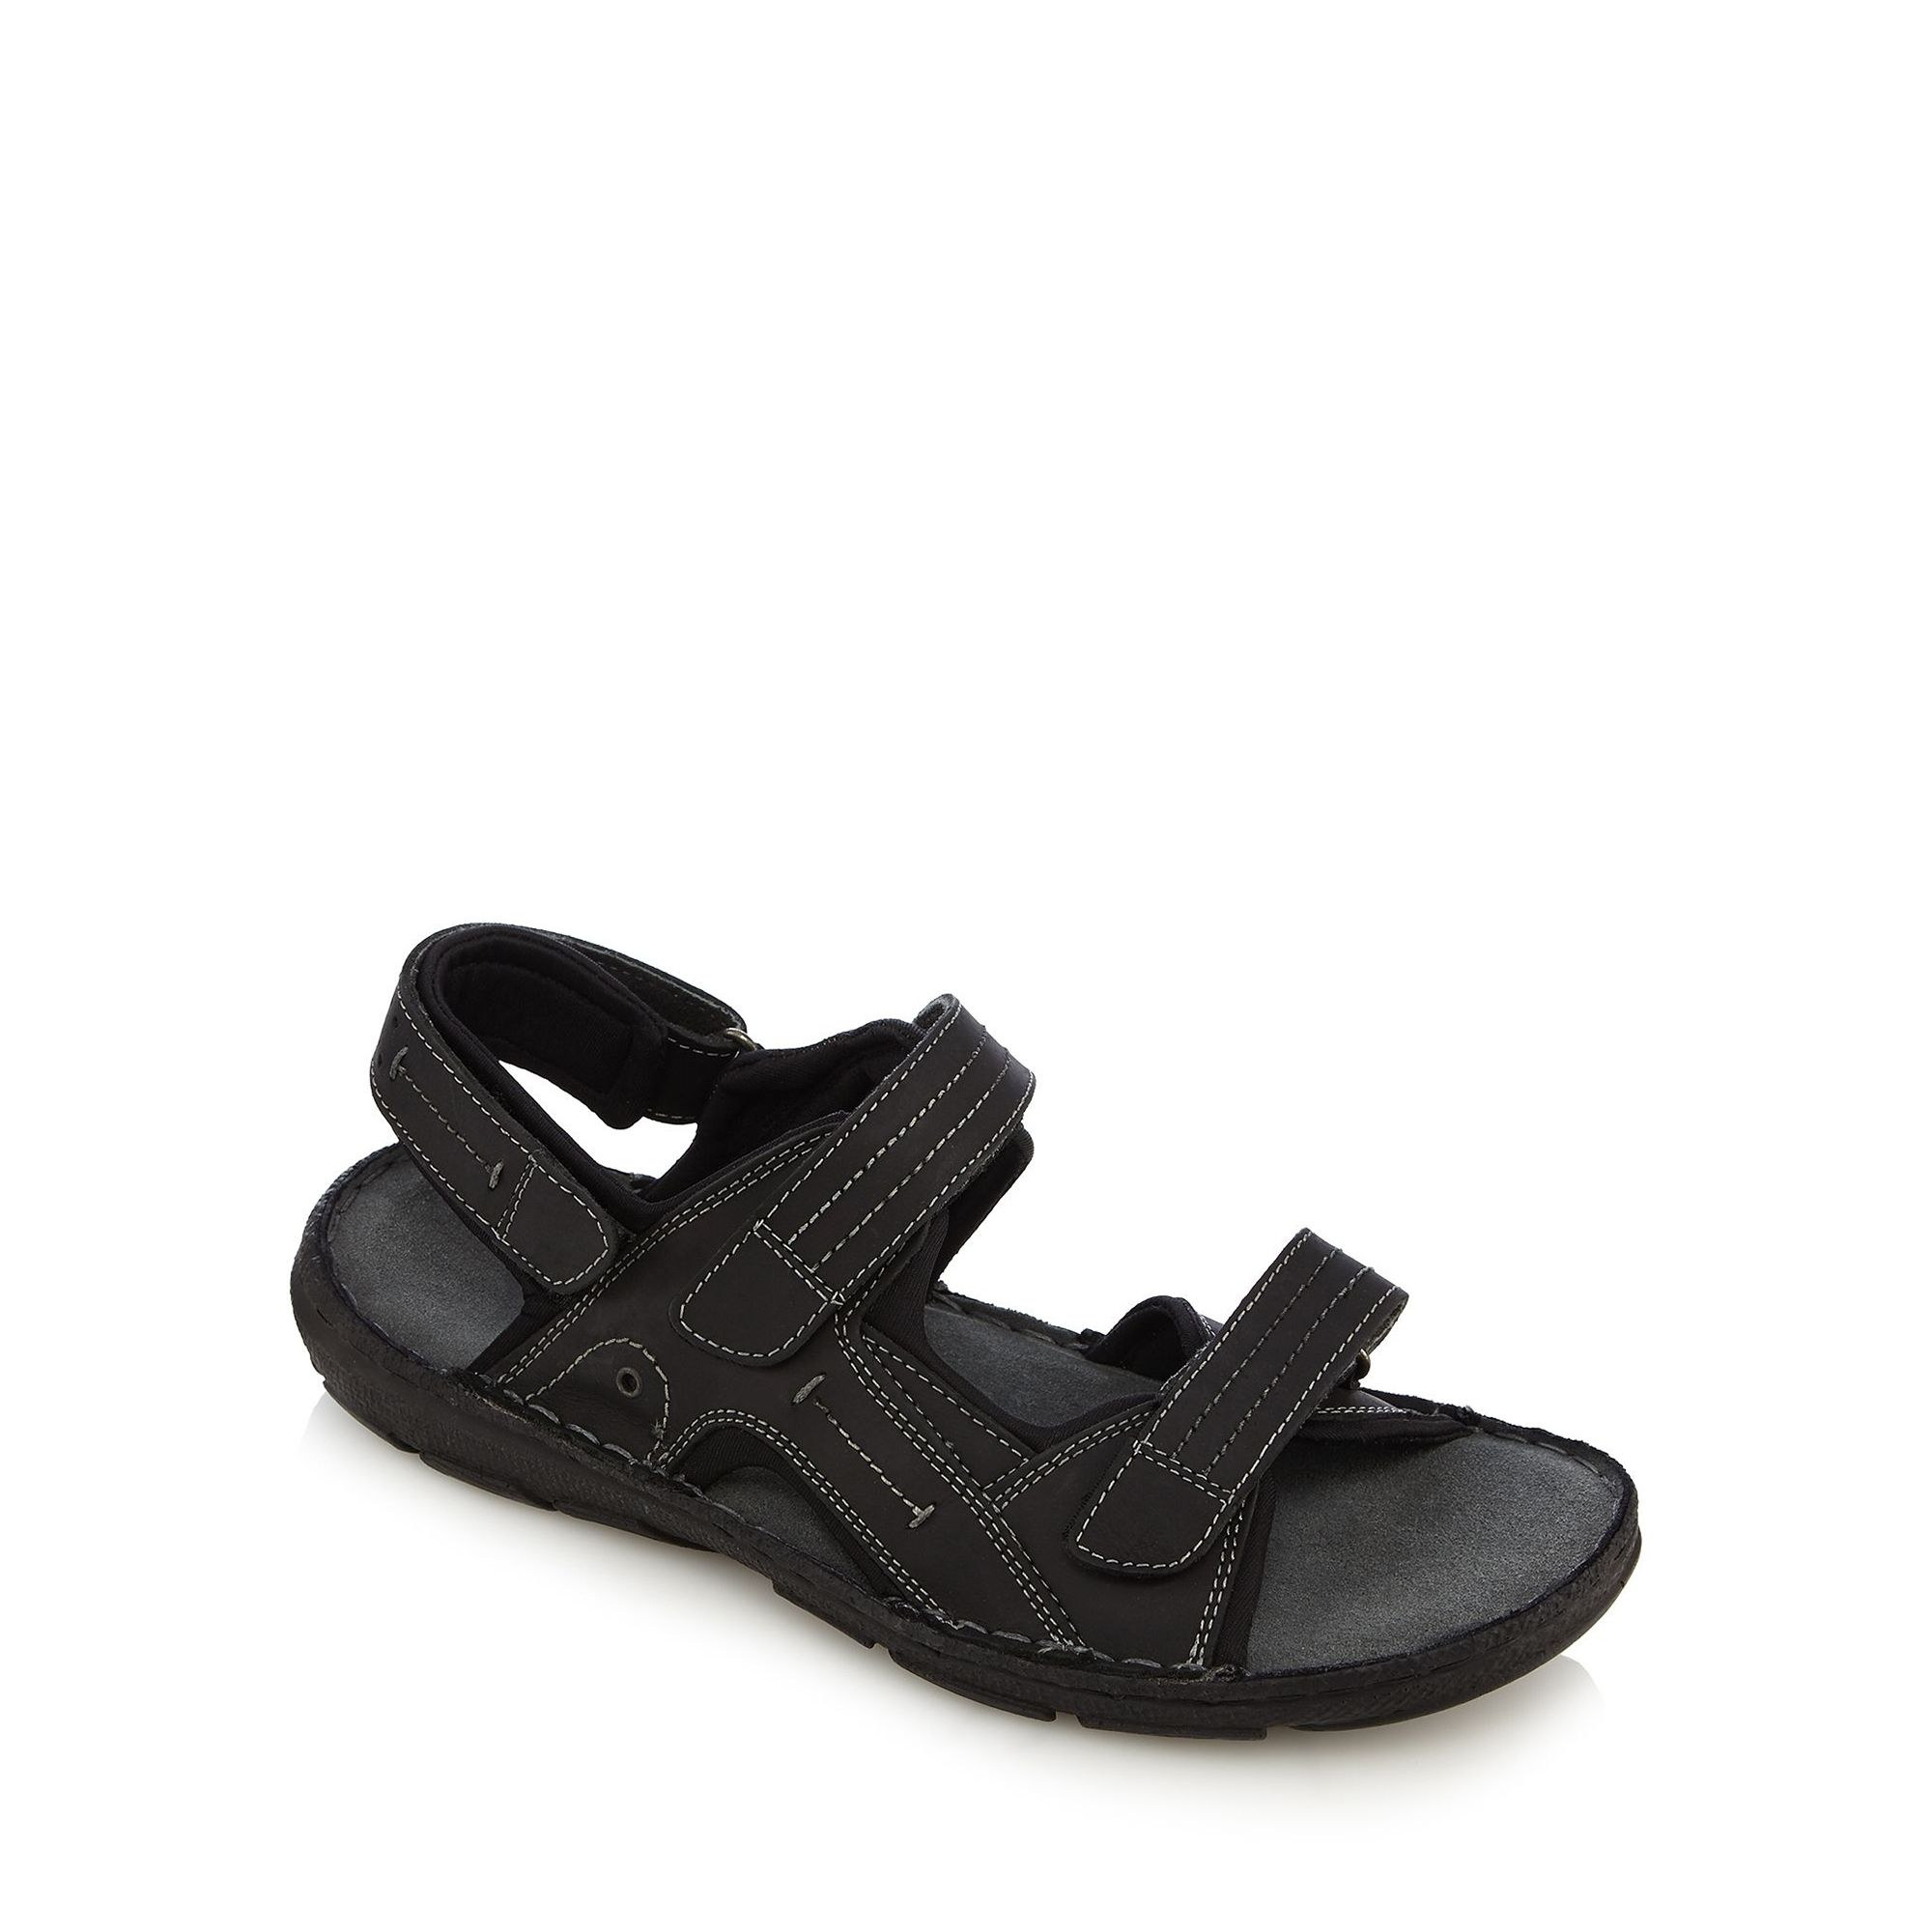 Black sandals debenhams - Free Delivery On Orders Over 40 When You Add To Basket At The Top Of The Page